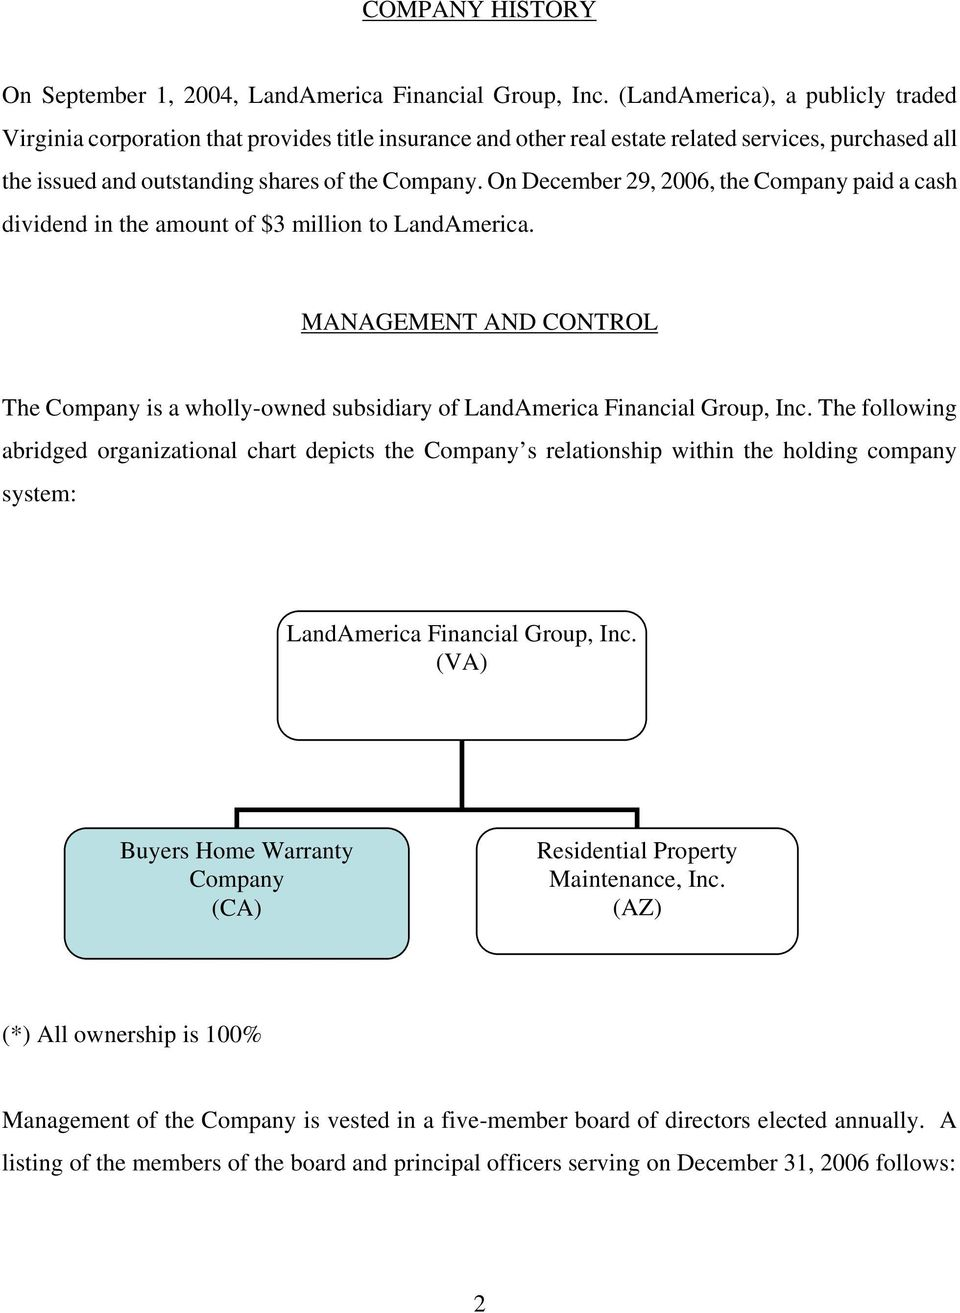 On December 29, 2006, the Company paid a cash dividend in the amount of $3 million to LandAmerica. MANAGEMENT AND CONTROL The Company is a wholly-owned subsidiary of LandAmerica Financial Group, Inc.